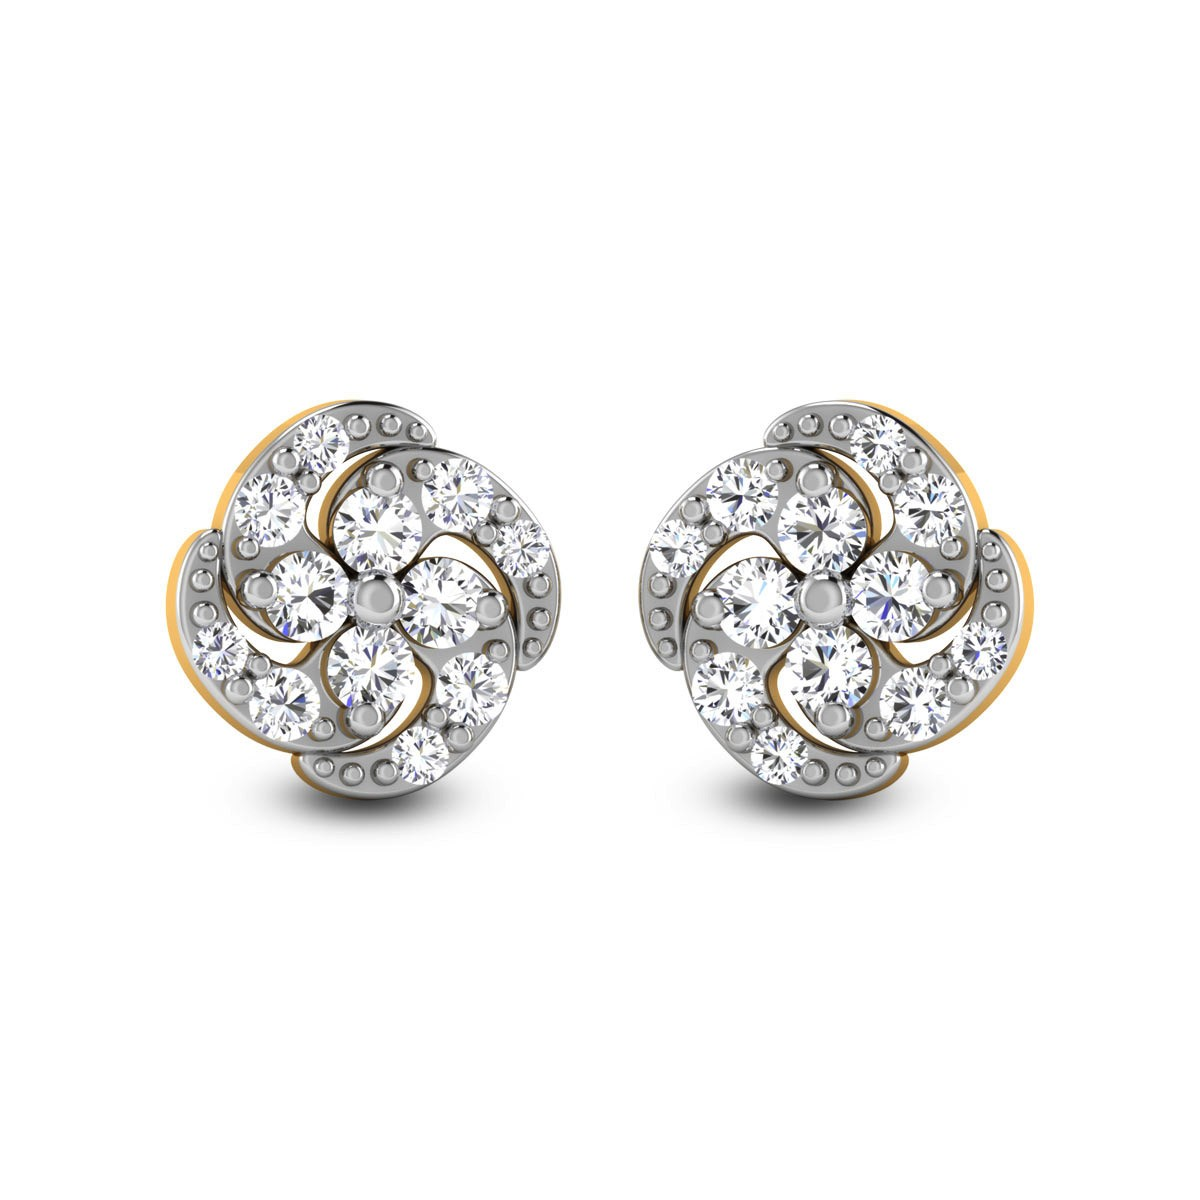 Spiral Floral Diamond Stud Earrings